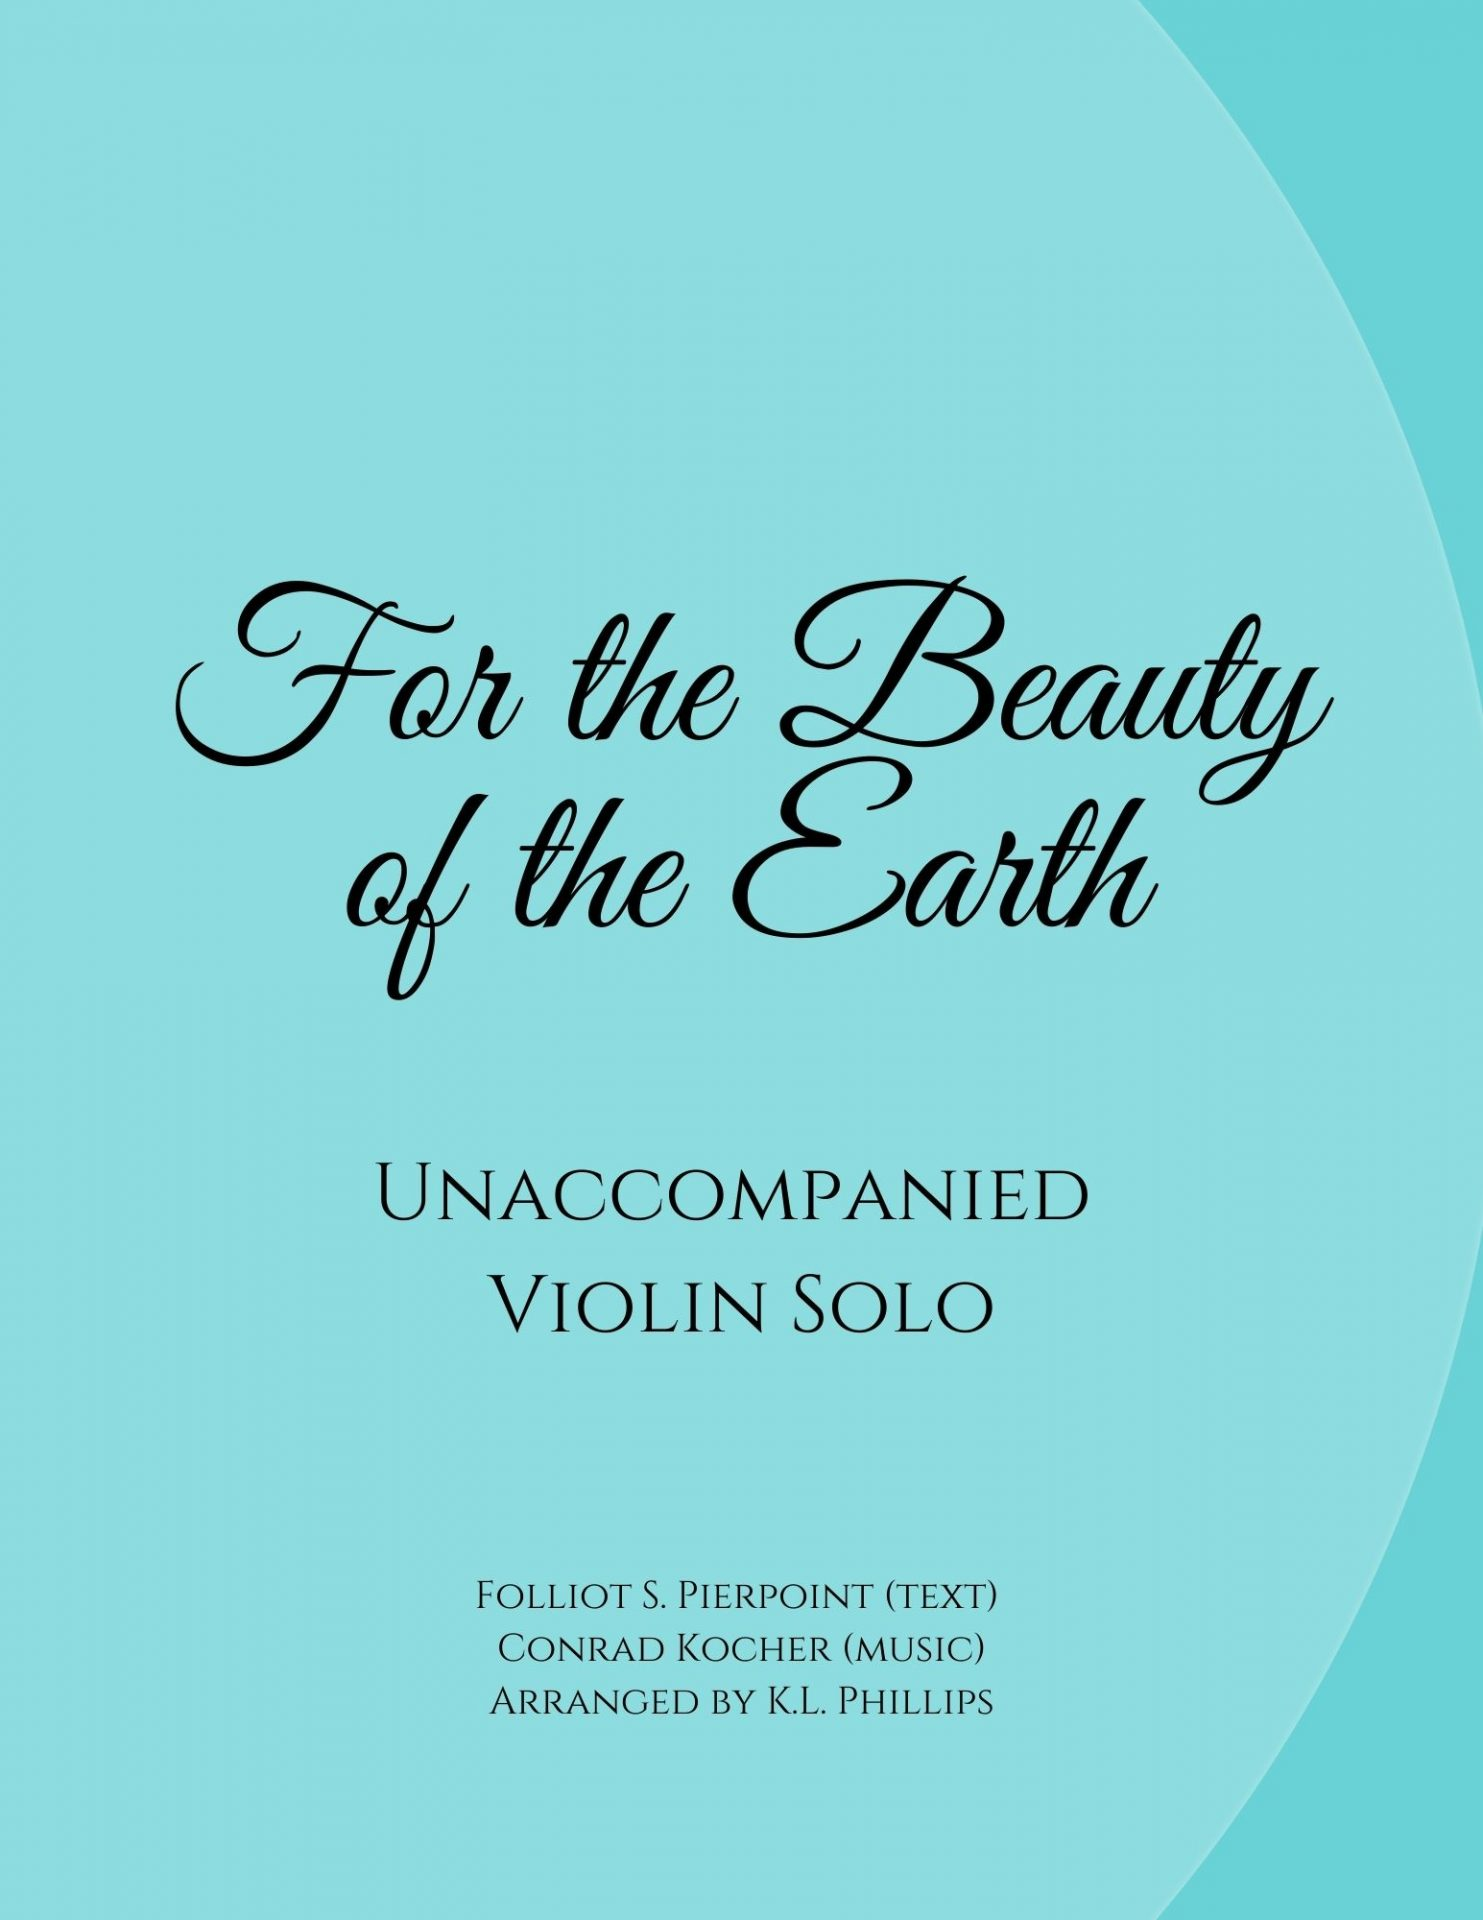 For the Beauty of the Earth web cover